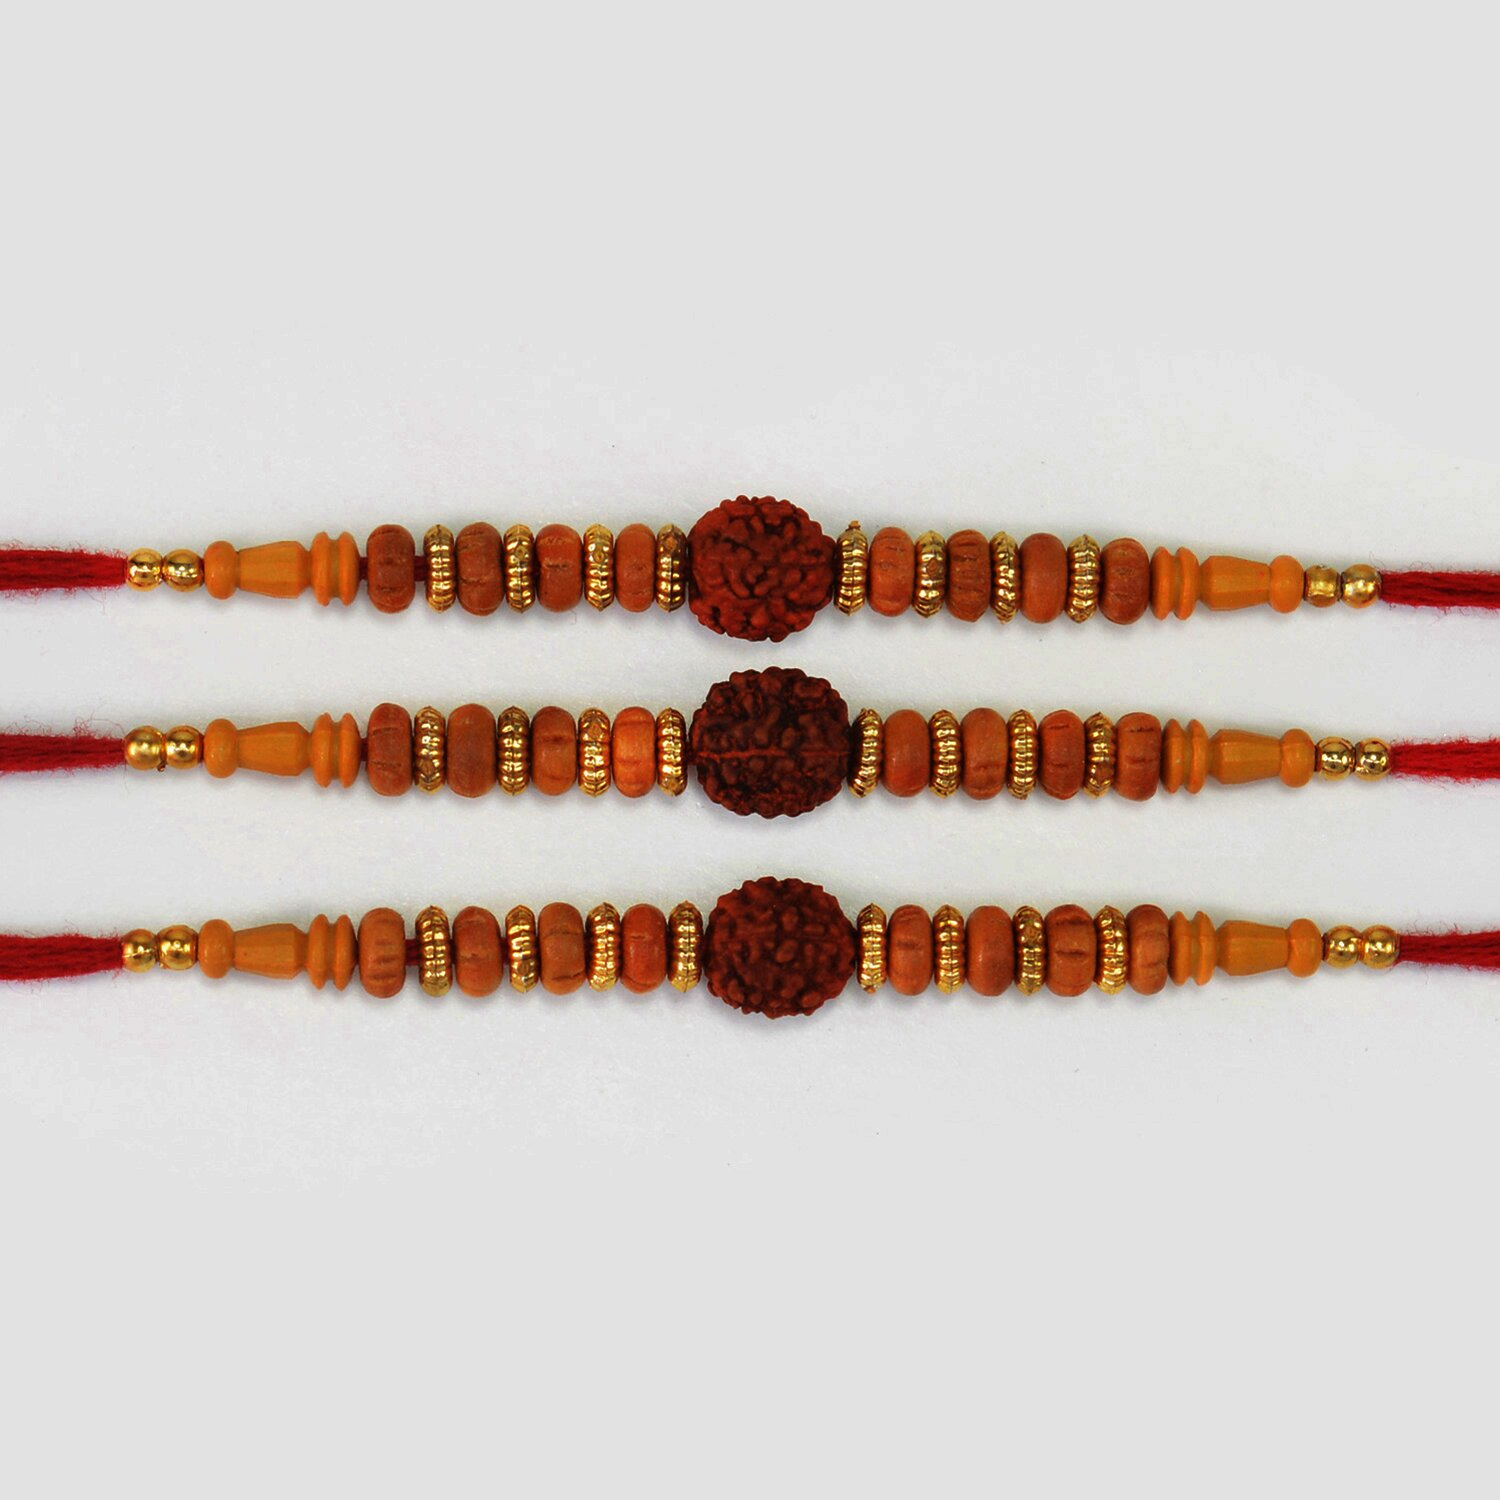 Rudraksha in Mid of Sandalwood Beads Nicely Crafted Amazing Rakhis Set for 3 Brothers